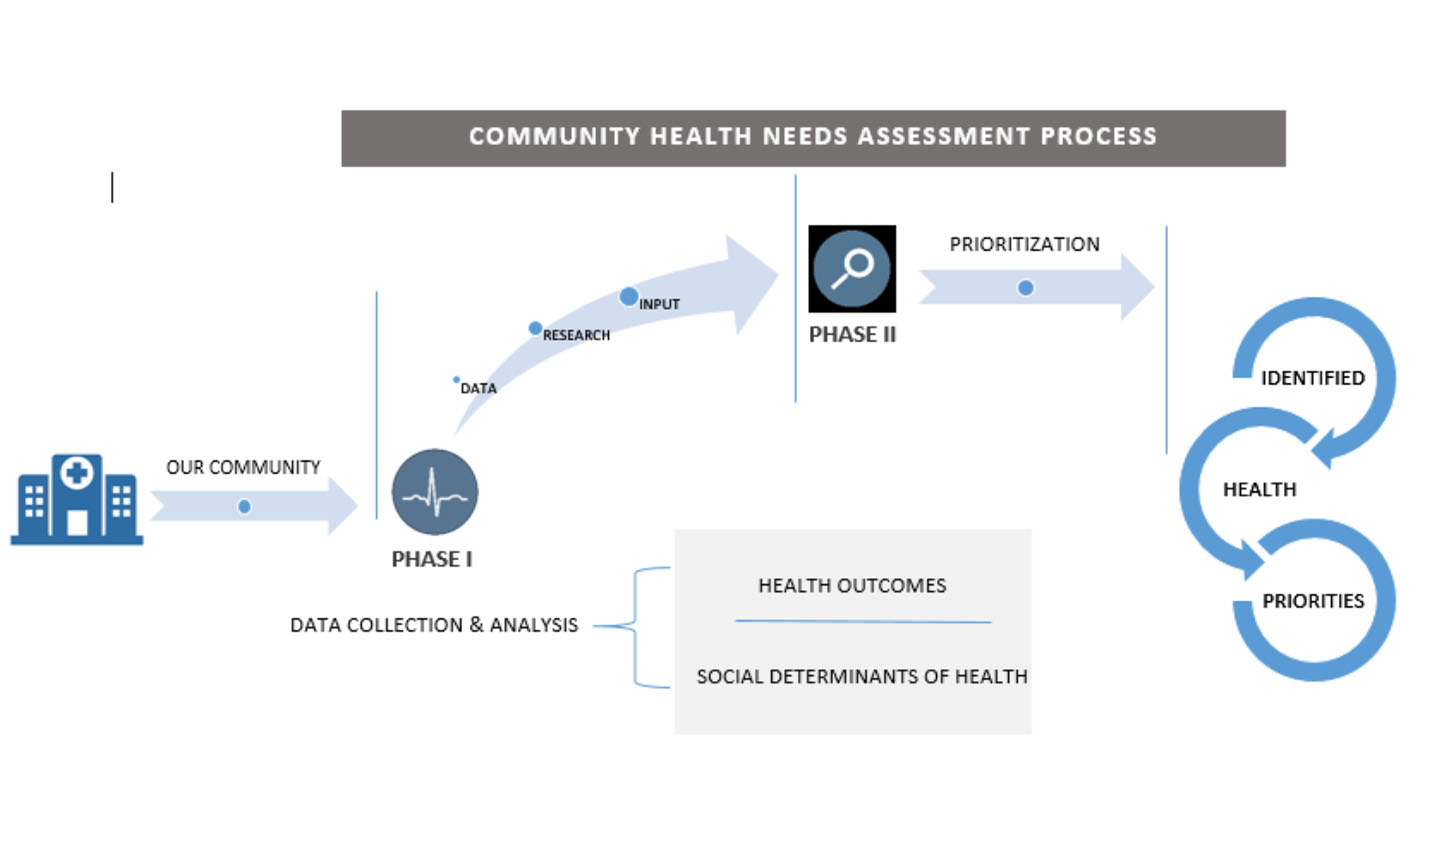 Community Health Needs Assessment Suburban Hospital In Bethesda Md The needs assessment is used as part of a planning process for improvements in business entities needs assessment is defined as a powerful tool for addressing the needs between current as well. community health needs assessment